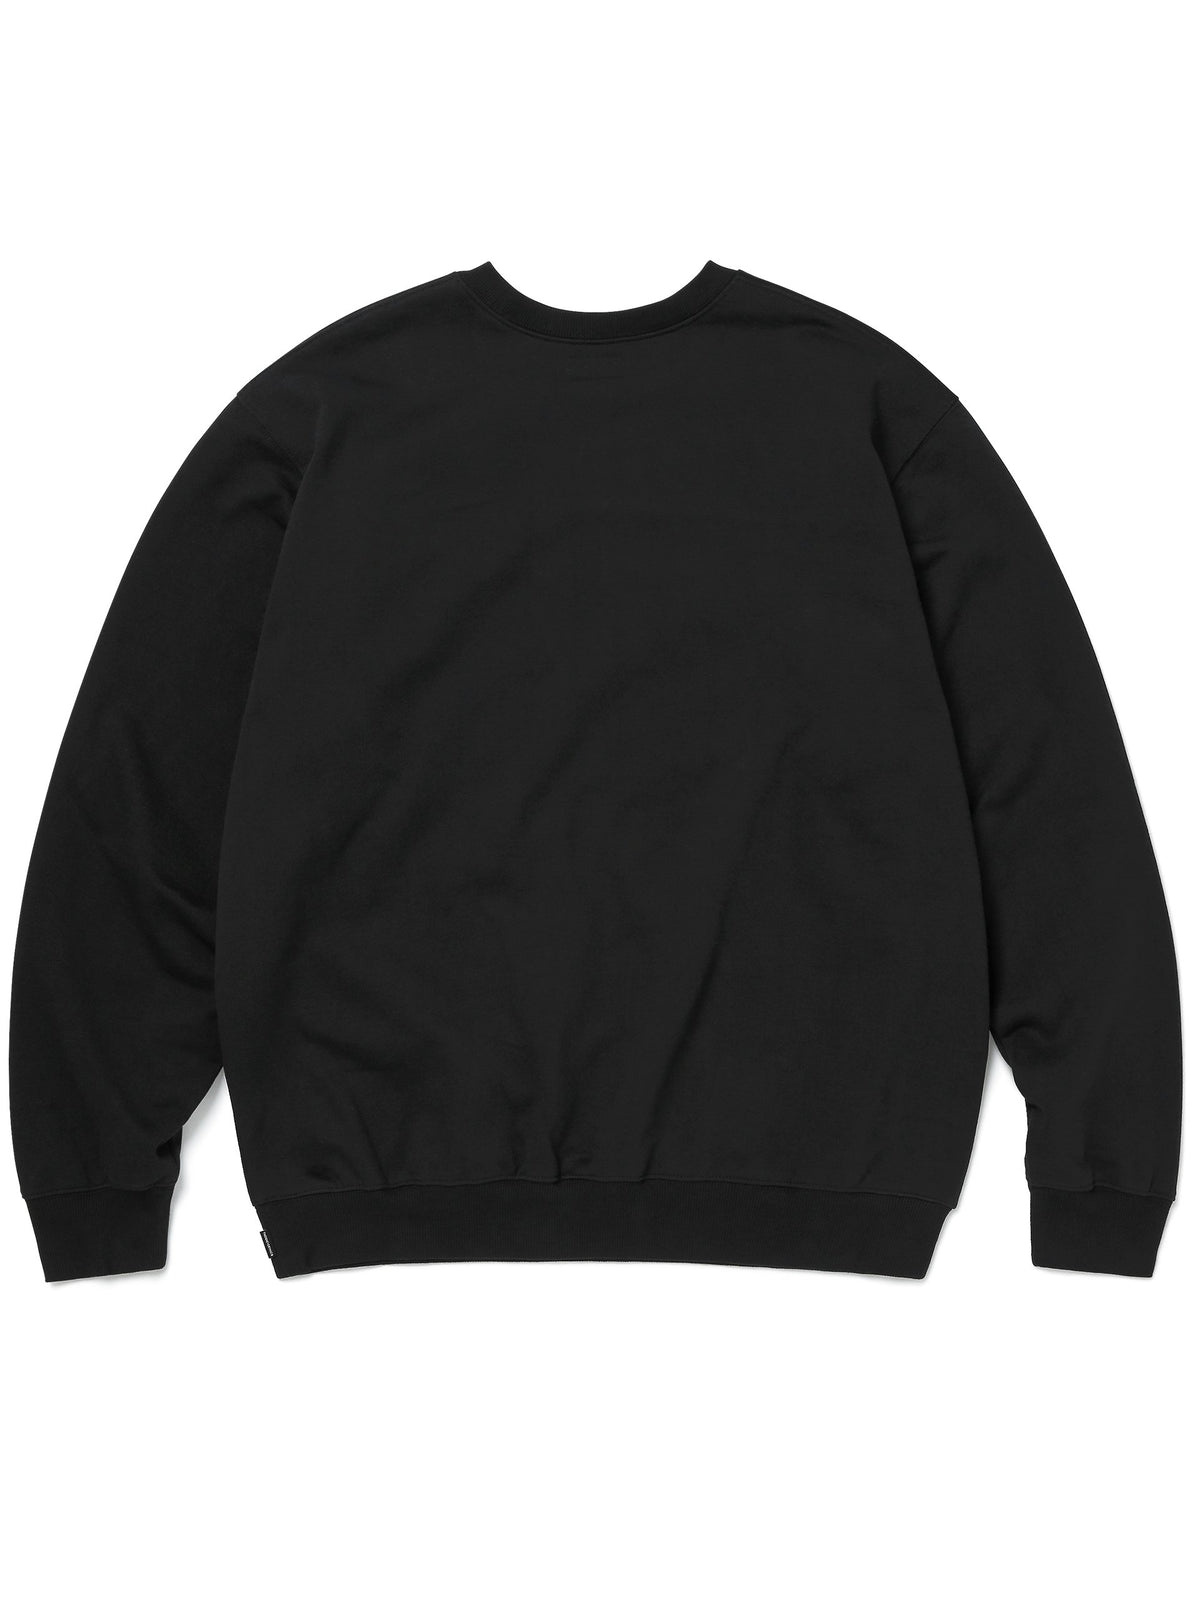 SP-INTL. Crewneck - thisisneverthat